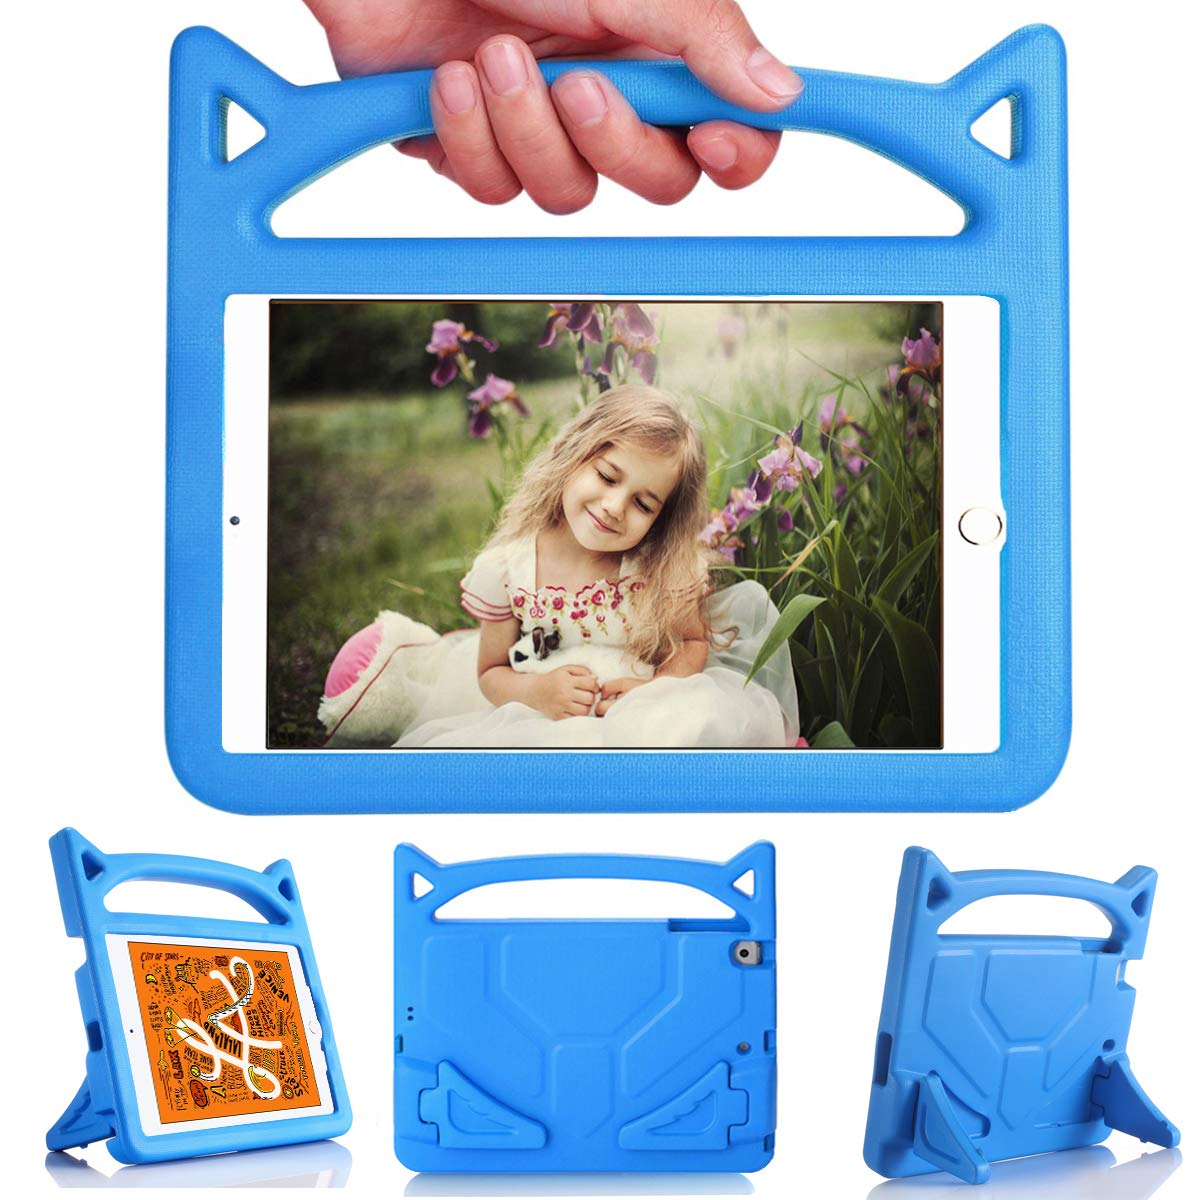 iPad Mini 5 4 3 2 1 Case for Kids, OQDDQO 2019 New Shockproof Case with Stand and Handle, Compatible with Ipad Mini 5th/4th/3th/2th/1th Generation Tablet, Designed for Boys and Girls (Blue)